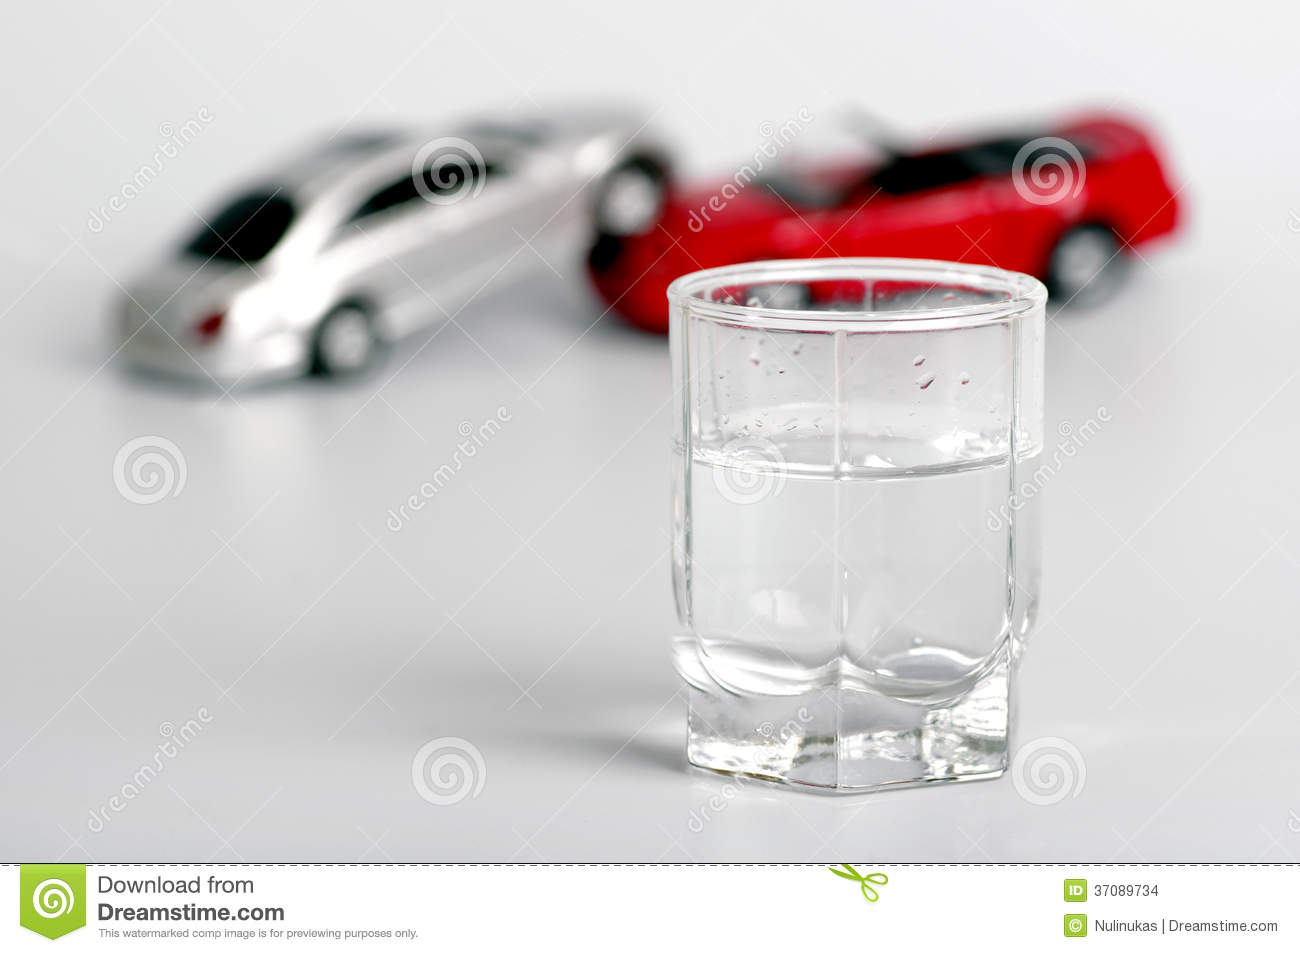 do not drive after drinking Plotline excitement may not notice incidental portrayals of drinking  decisions  not to drive after drinking or not to drink before driving, portrayals of accidents.